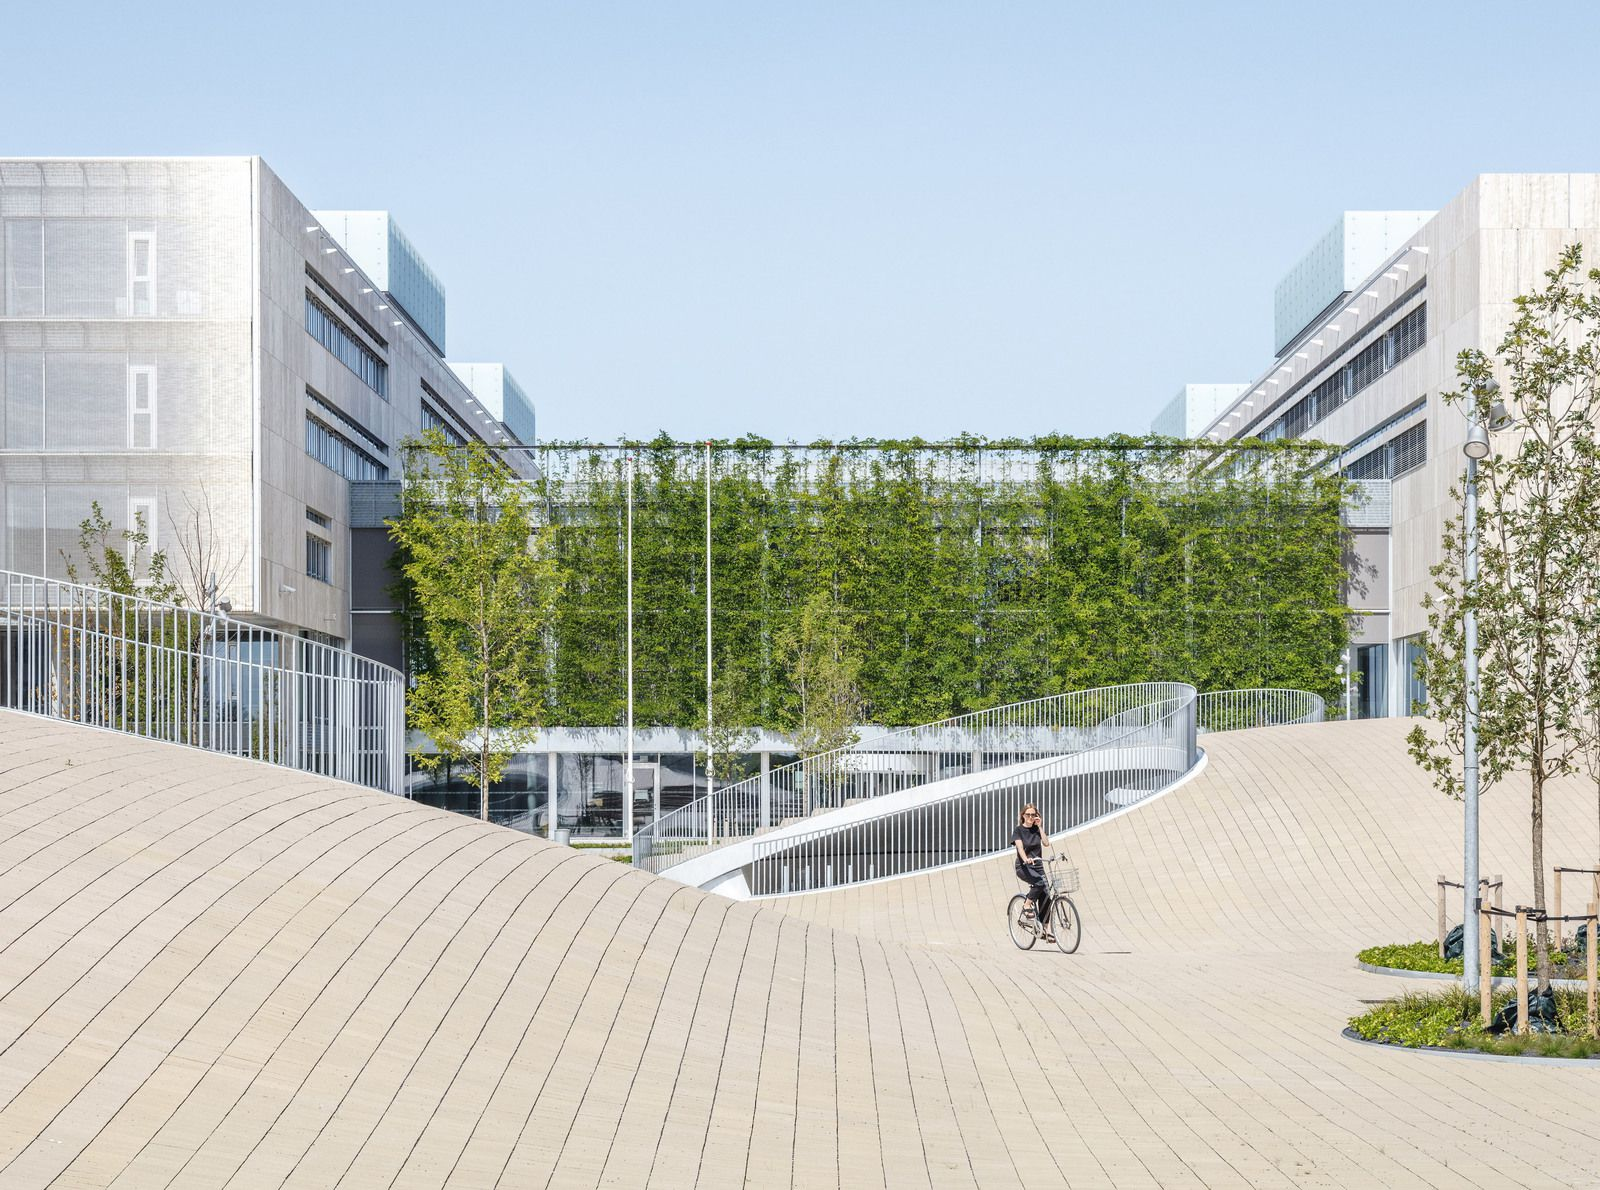 KAREN BLIXENS PLADS, A NEW URBAN SPACE BY THE UNIVERSITY OF COPENHAGEN AND DESIGNED BY COBE ARCHITECTS